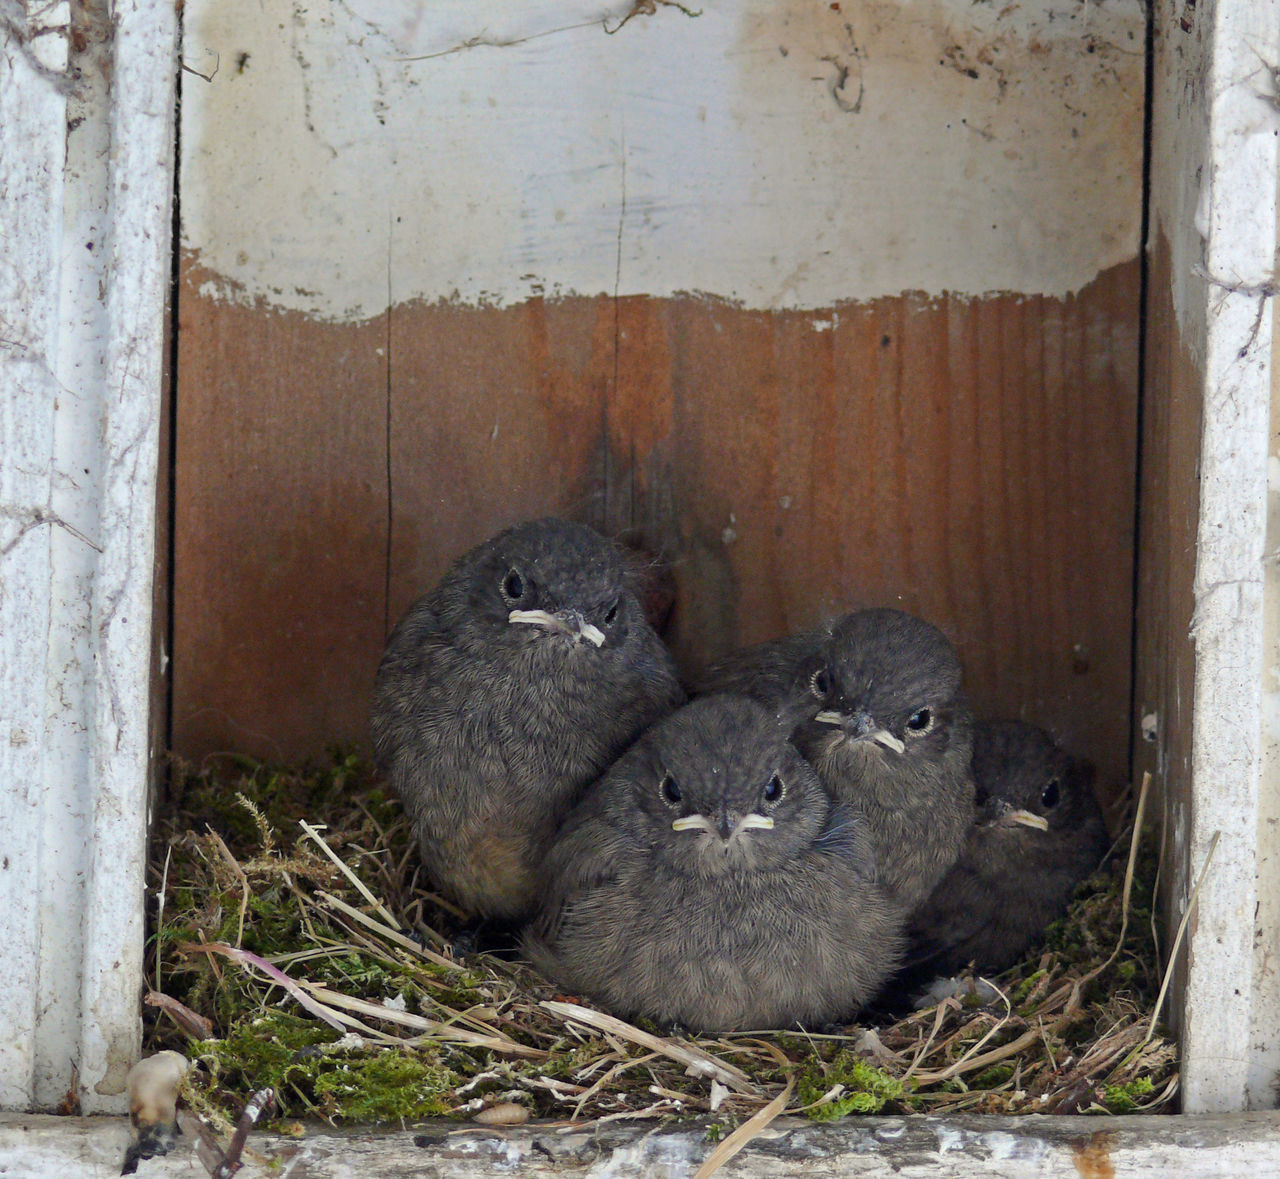 Animal Themes Animals In The Wild Bird Bruthöhle Close Up Close-up Dirty Nest Nestlinge Nestlings Nistkasten No People One Animal Rotkehlchen Vogelkind Vogelkunde Wildlife